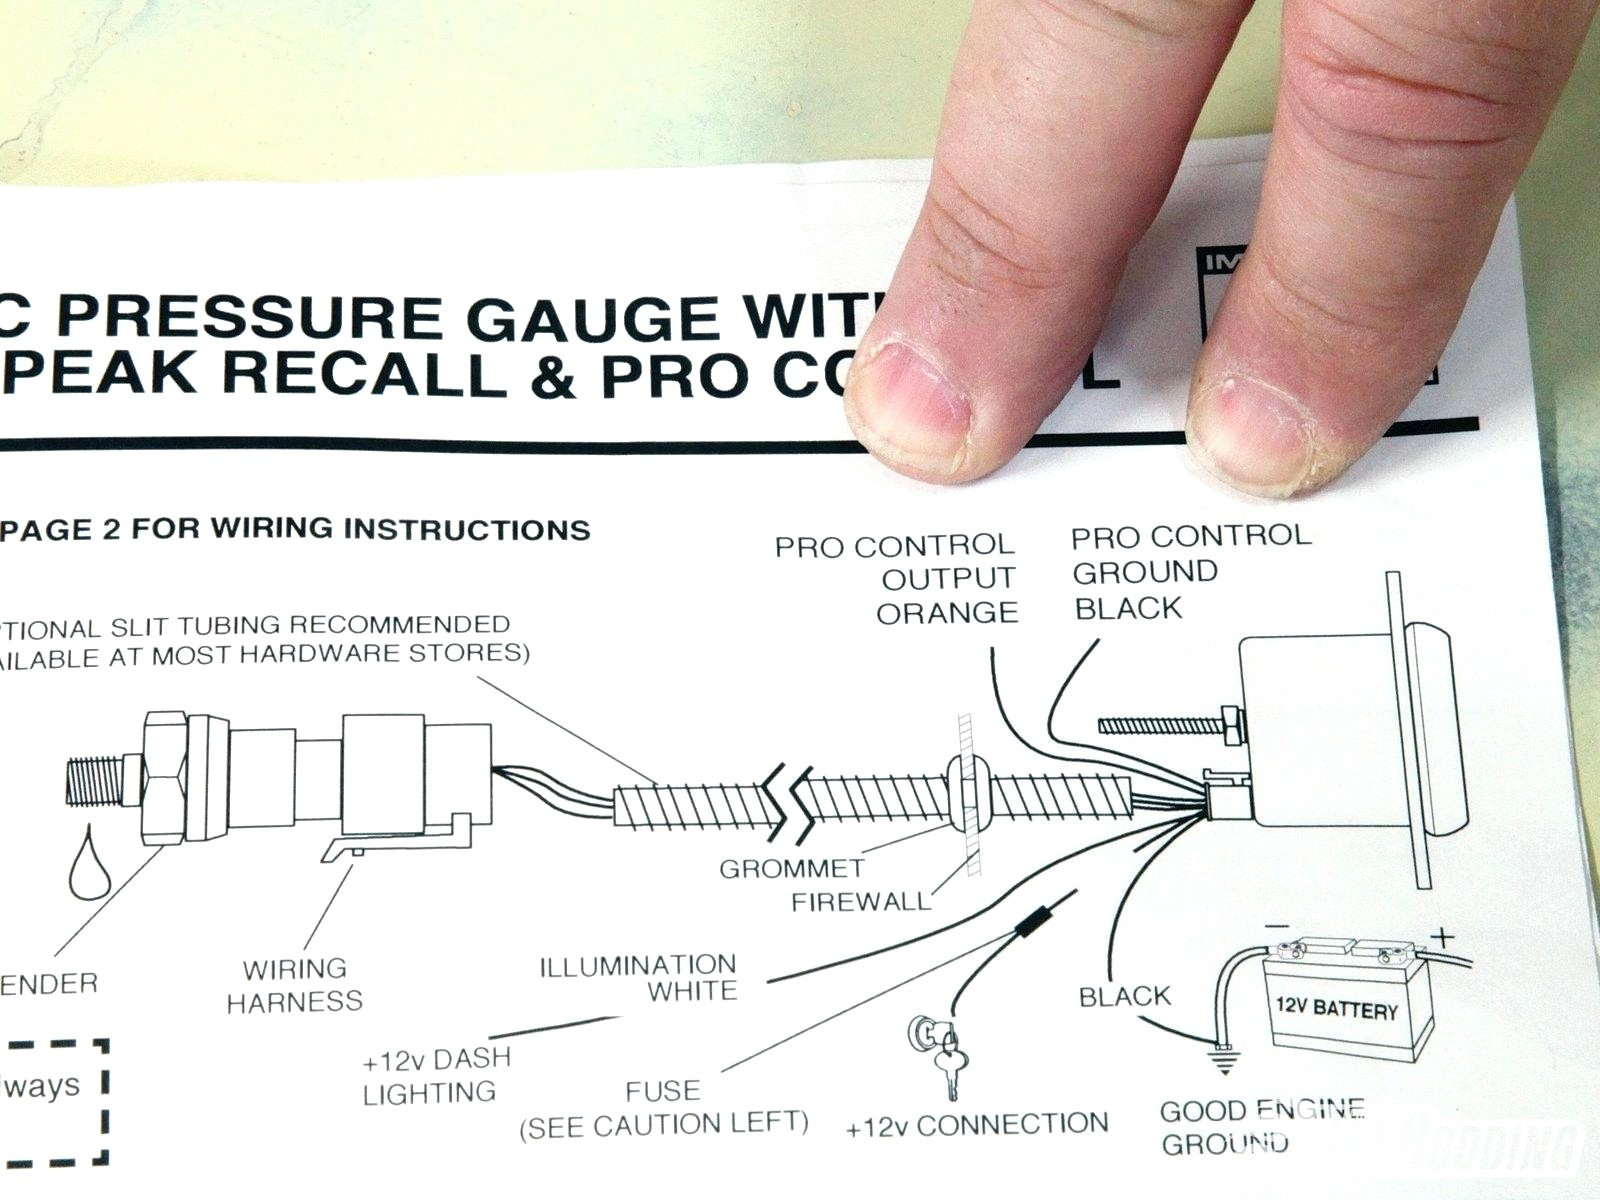 Autometer oil pressure gauge wiring diagram wiring library autometer oil pressure gauge wiring diagram wiring diagram image autometer voltmeter diagram autometer oil pressure gauge wiring diagram asfbconference2016 Gallery